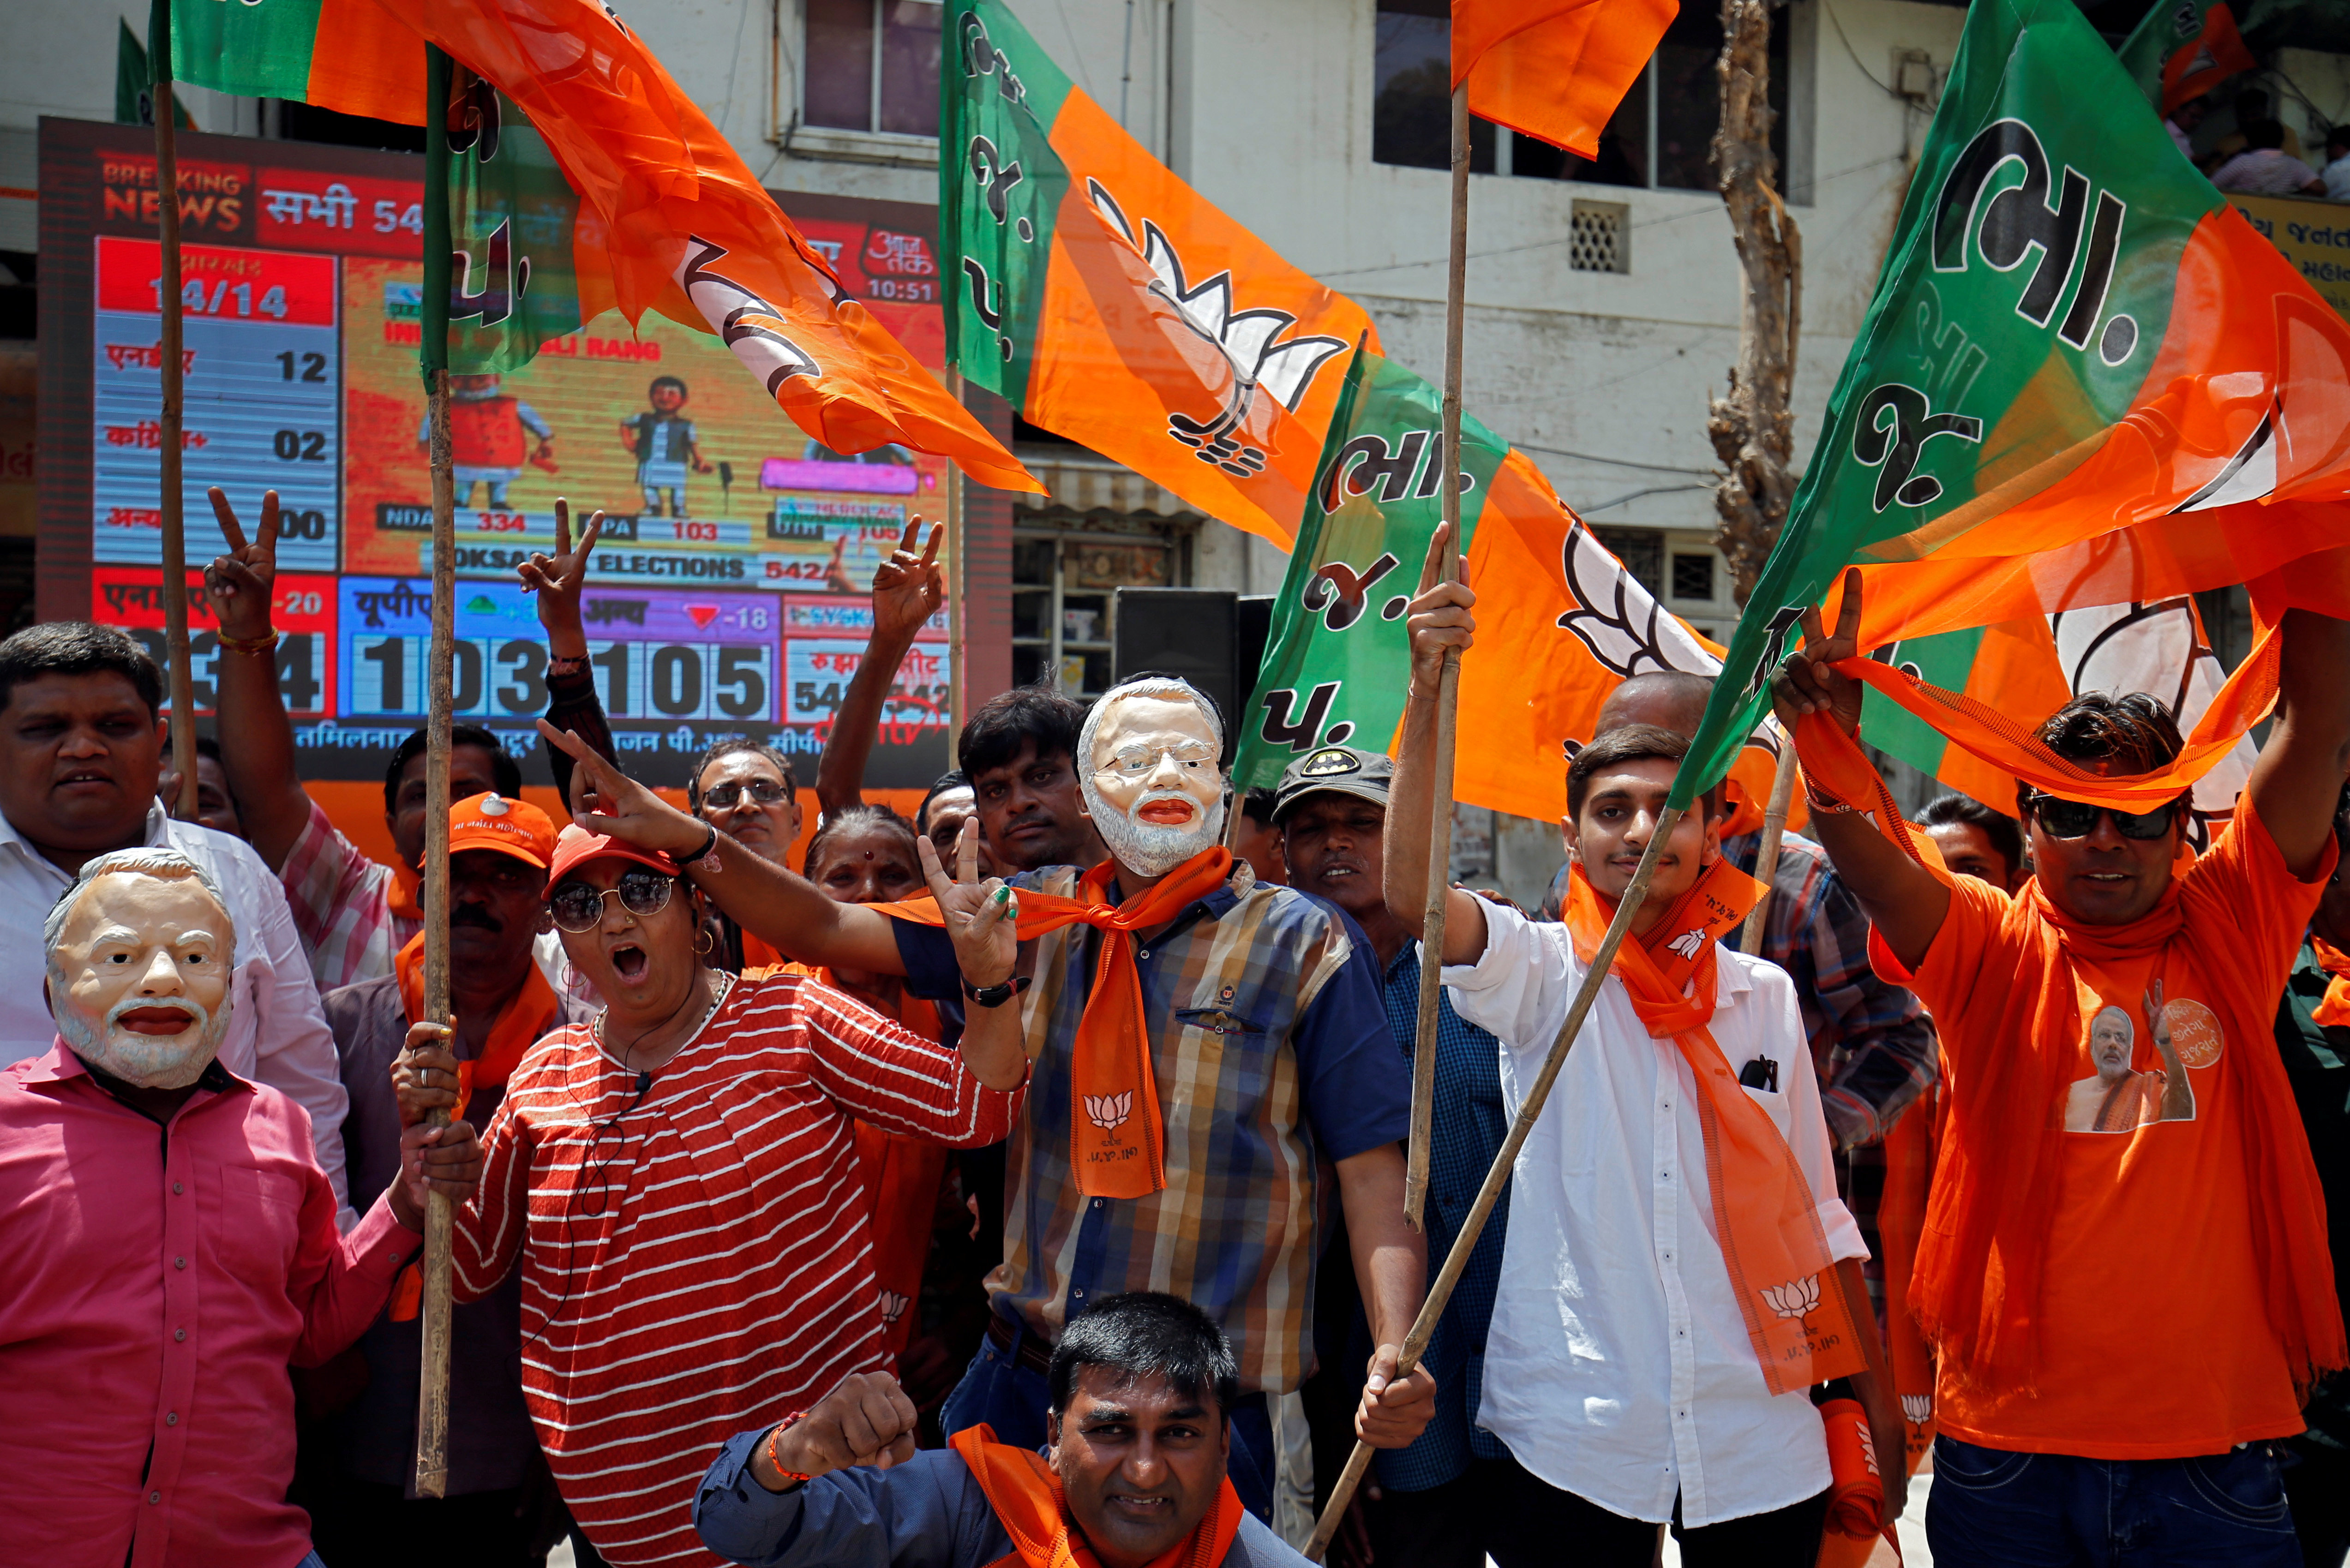 Supporters of Bharatiya Janata Party (BJP) celebrate after learning of initial poll results in Ahmedabad, India, May 23, 2019